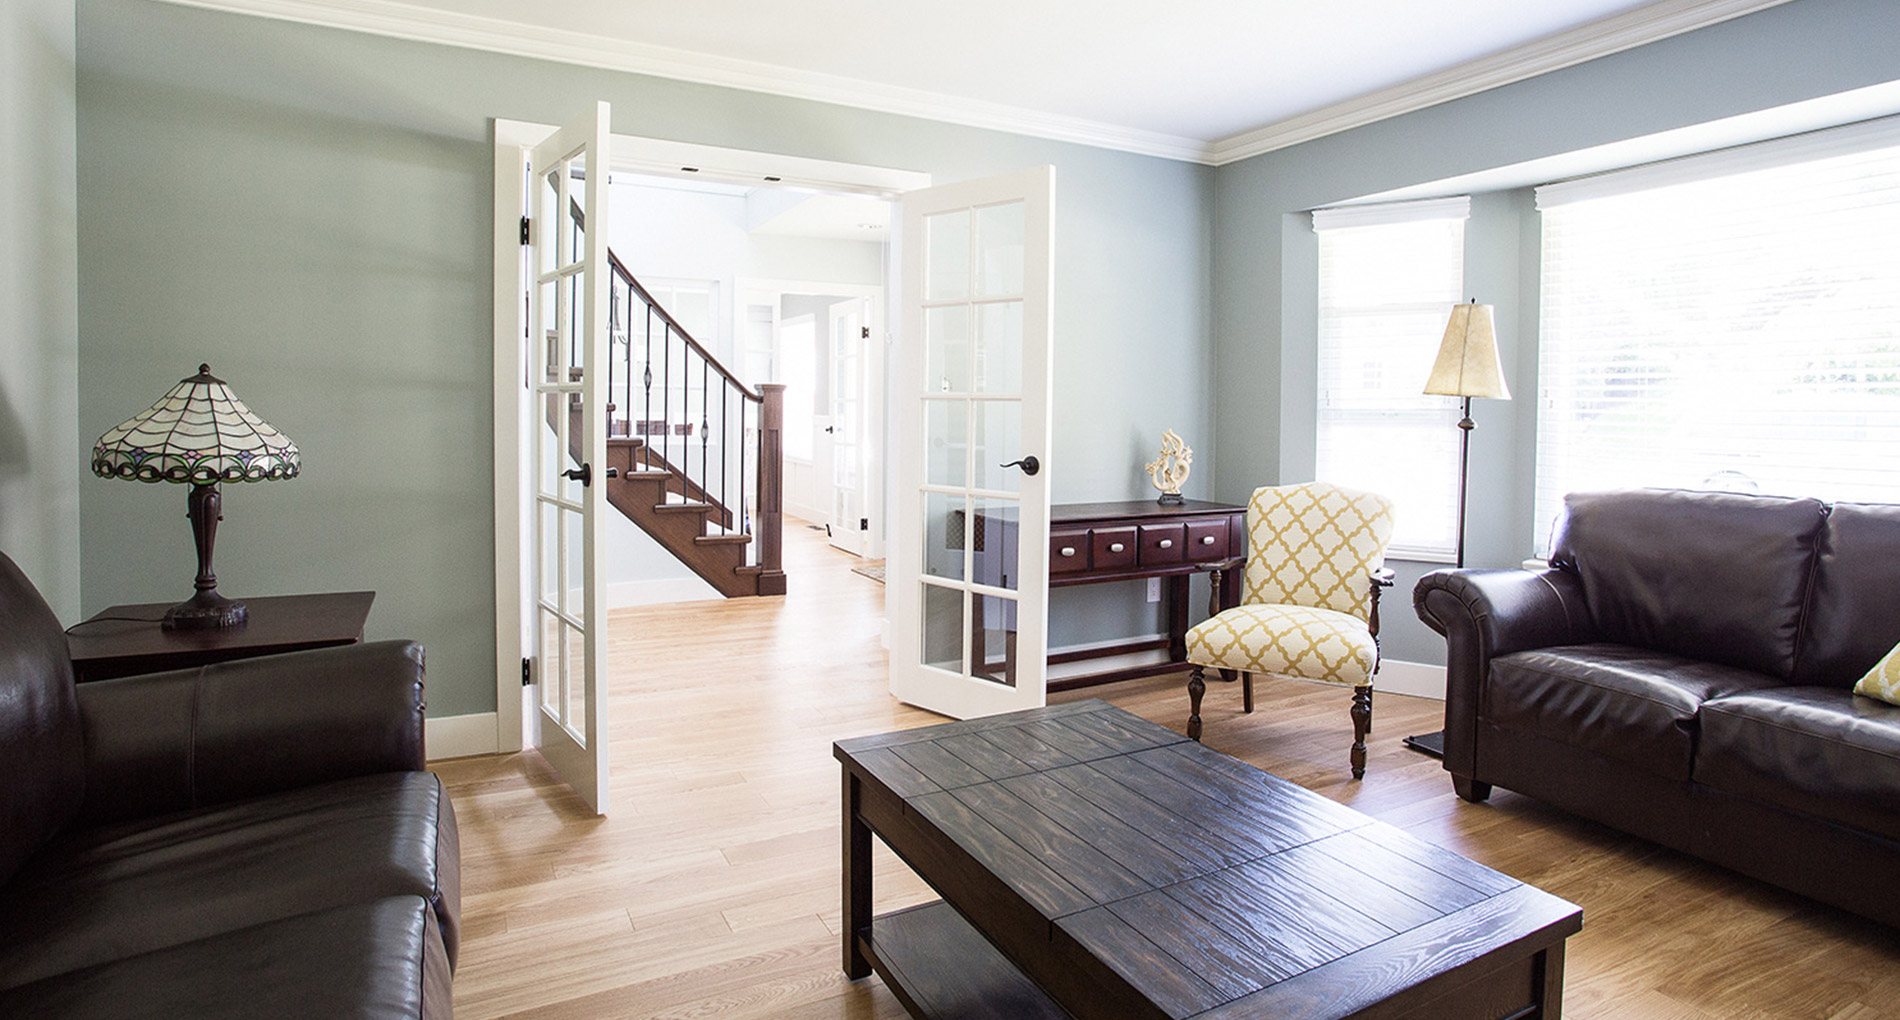 Timbervalley Home Renovation